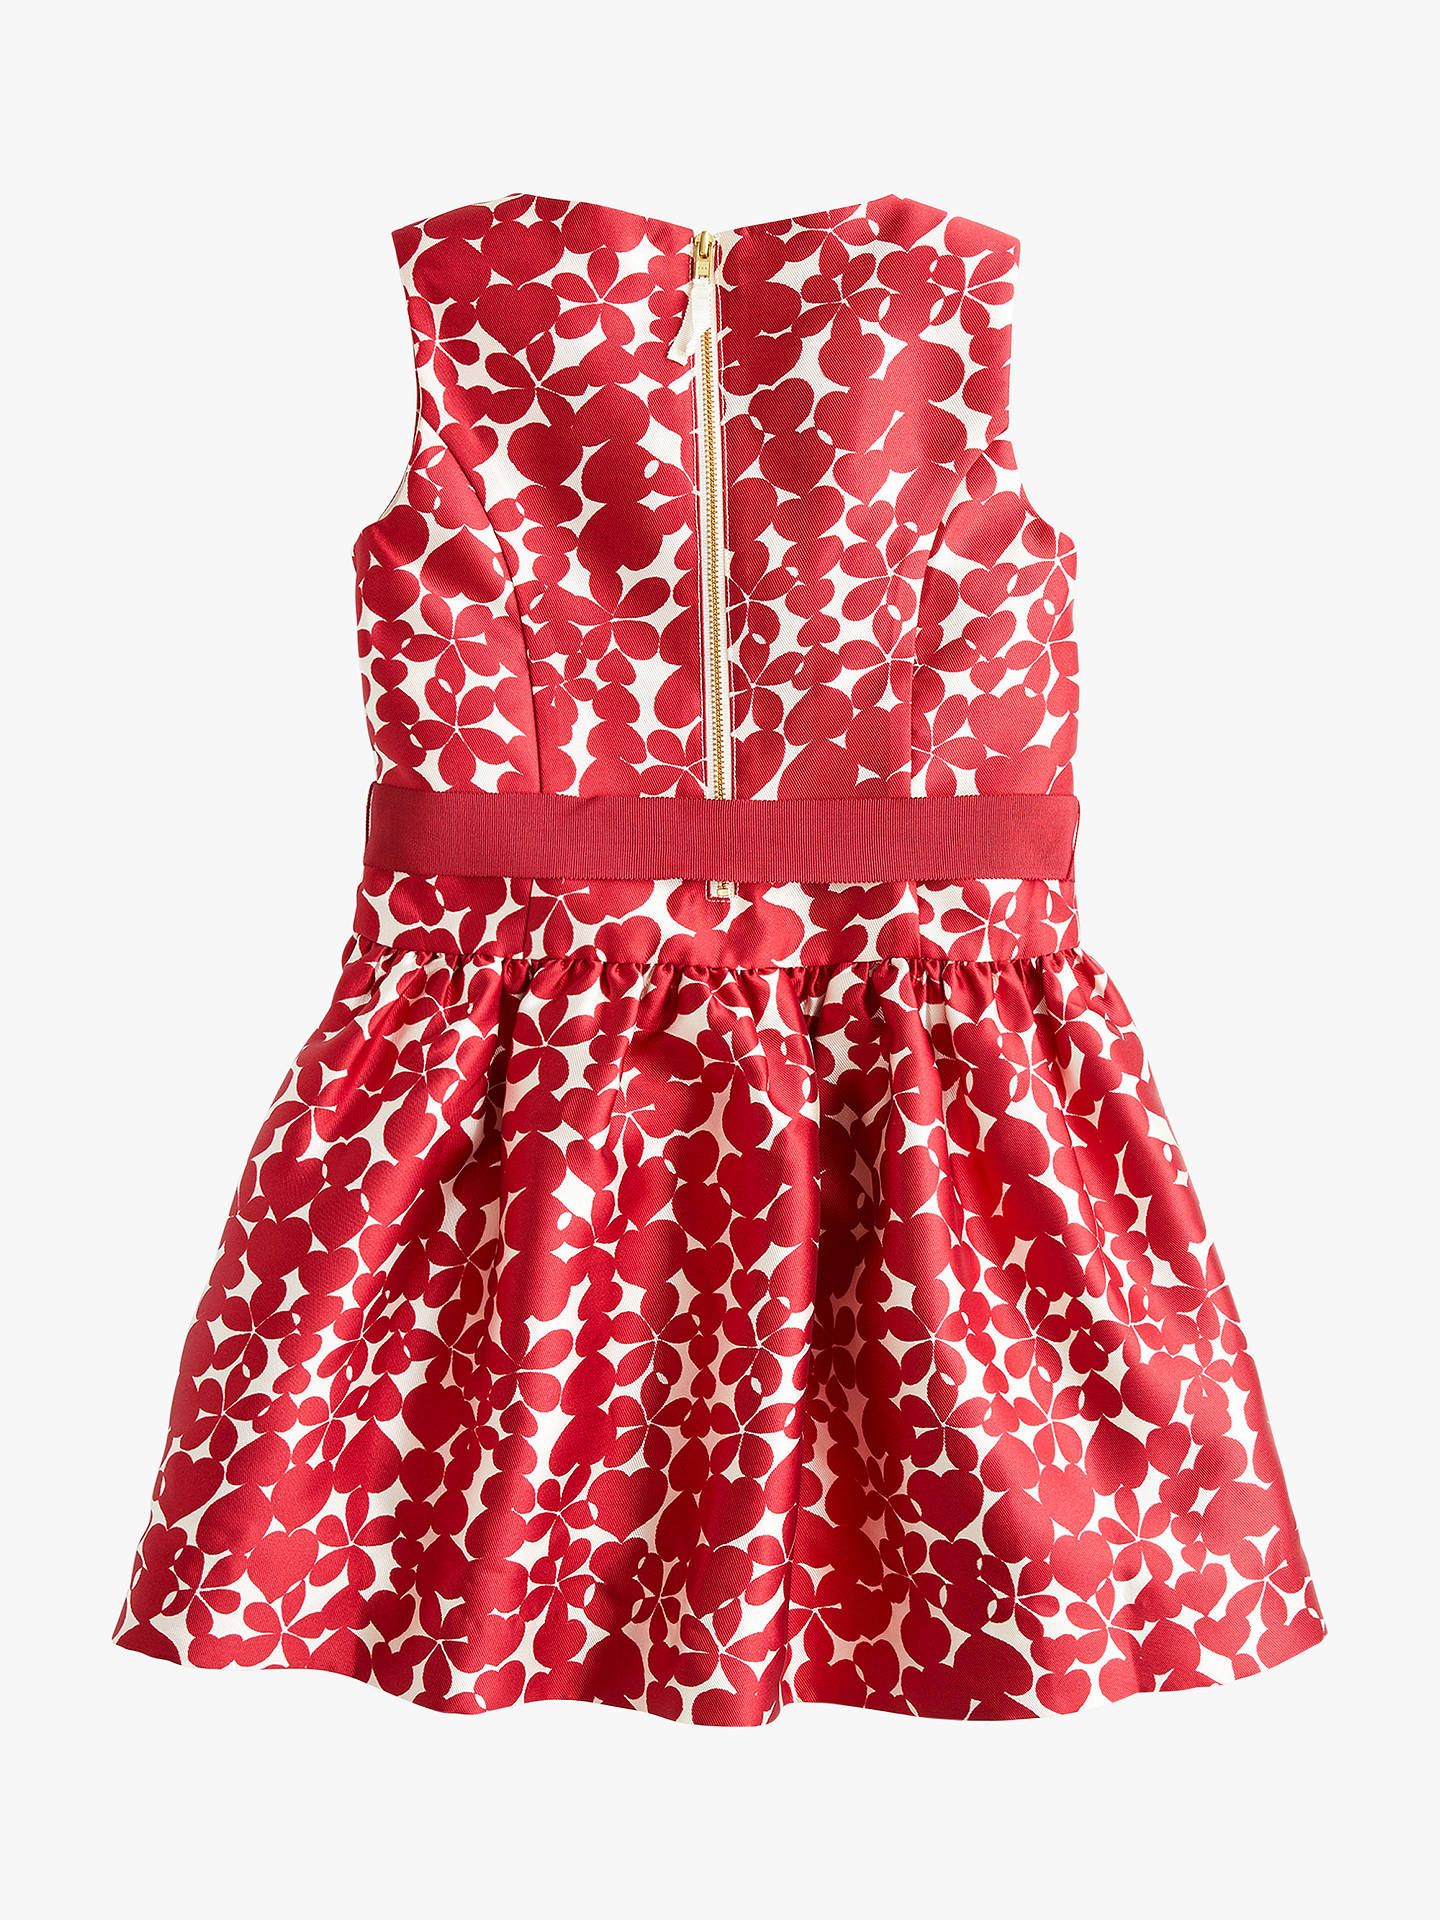 cebe737a09e ... Buy crewcuts by J.Crew Girls  Heart and Flower Dress